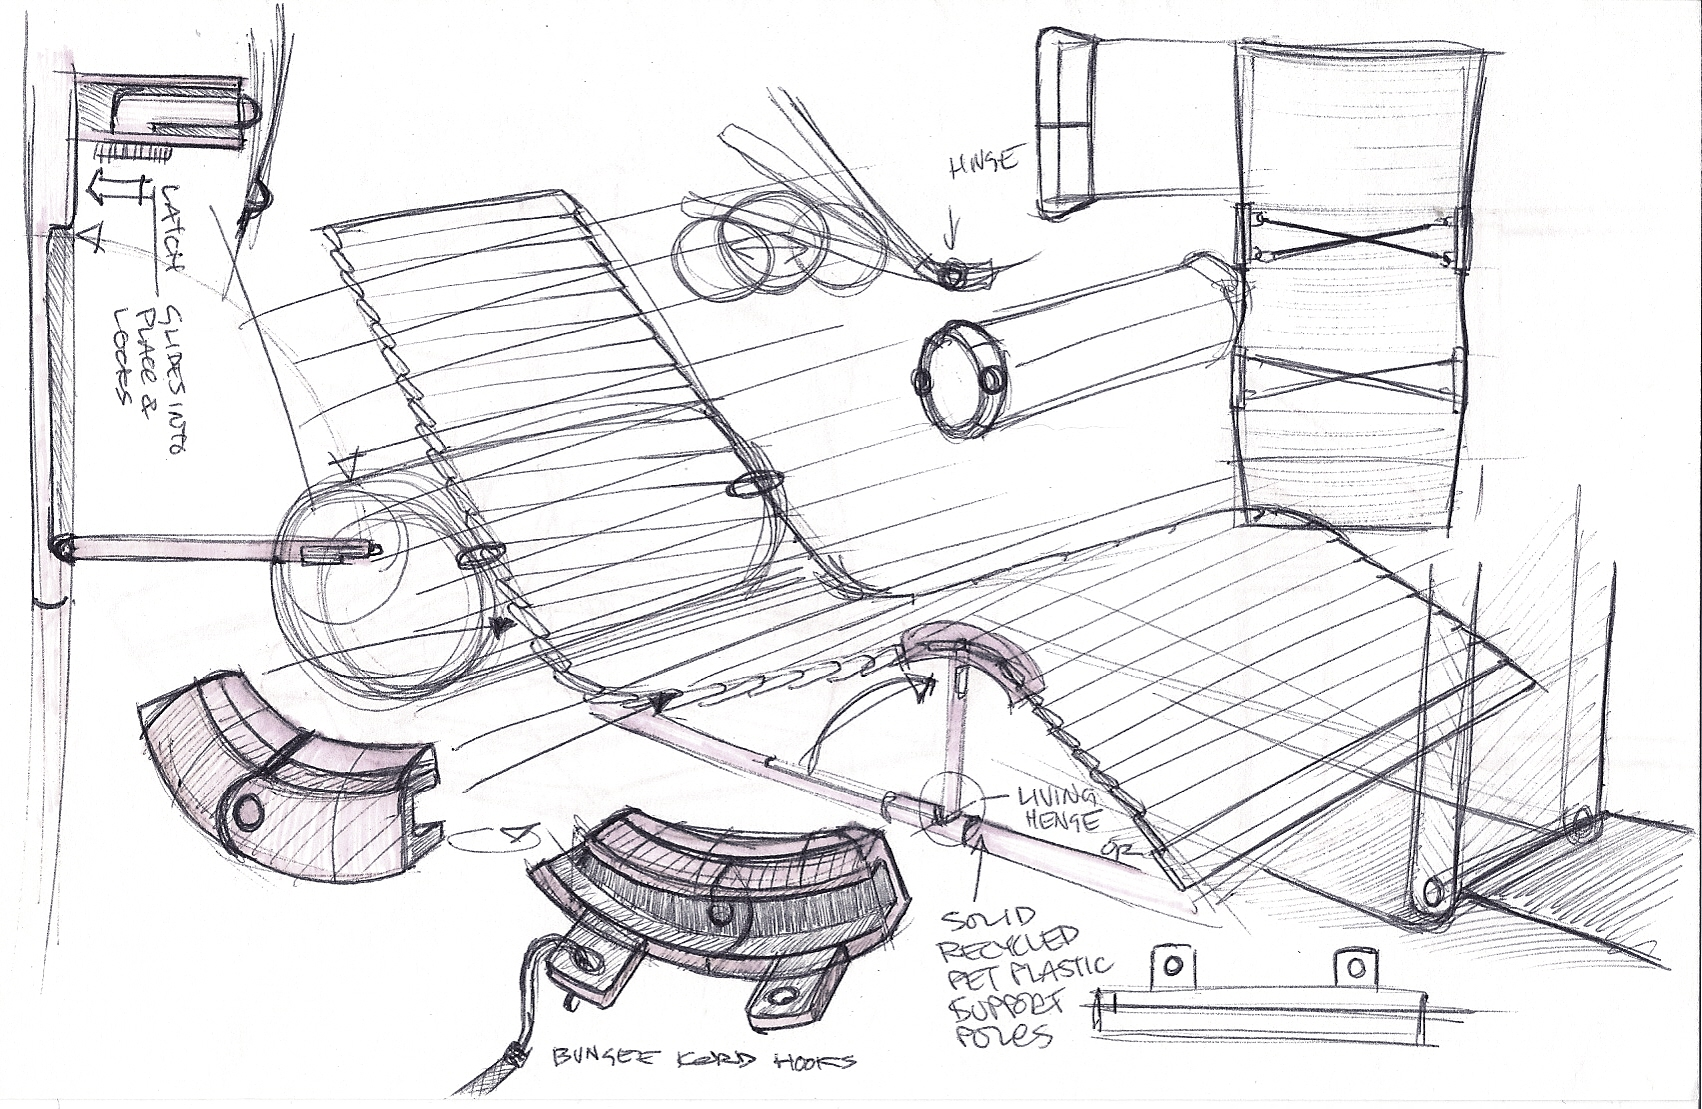 Furniture Sketches Furniture Sketches By Alton Janelle Iv At Coroflotcom